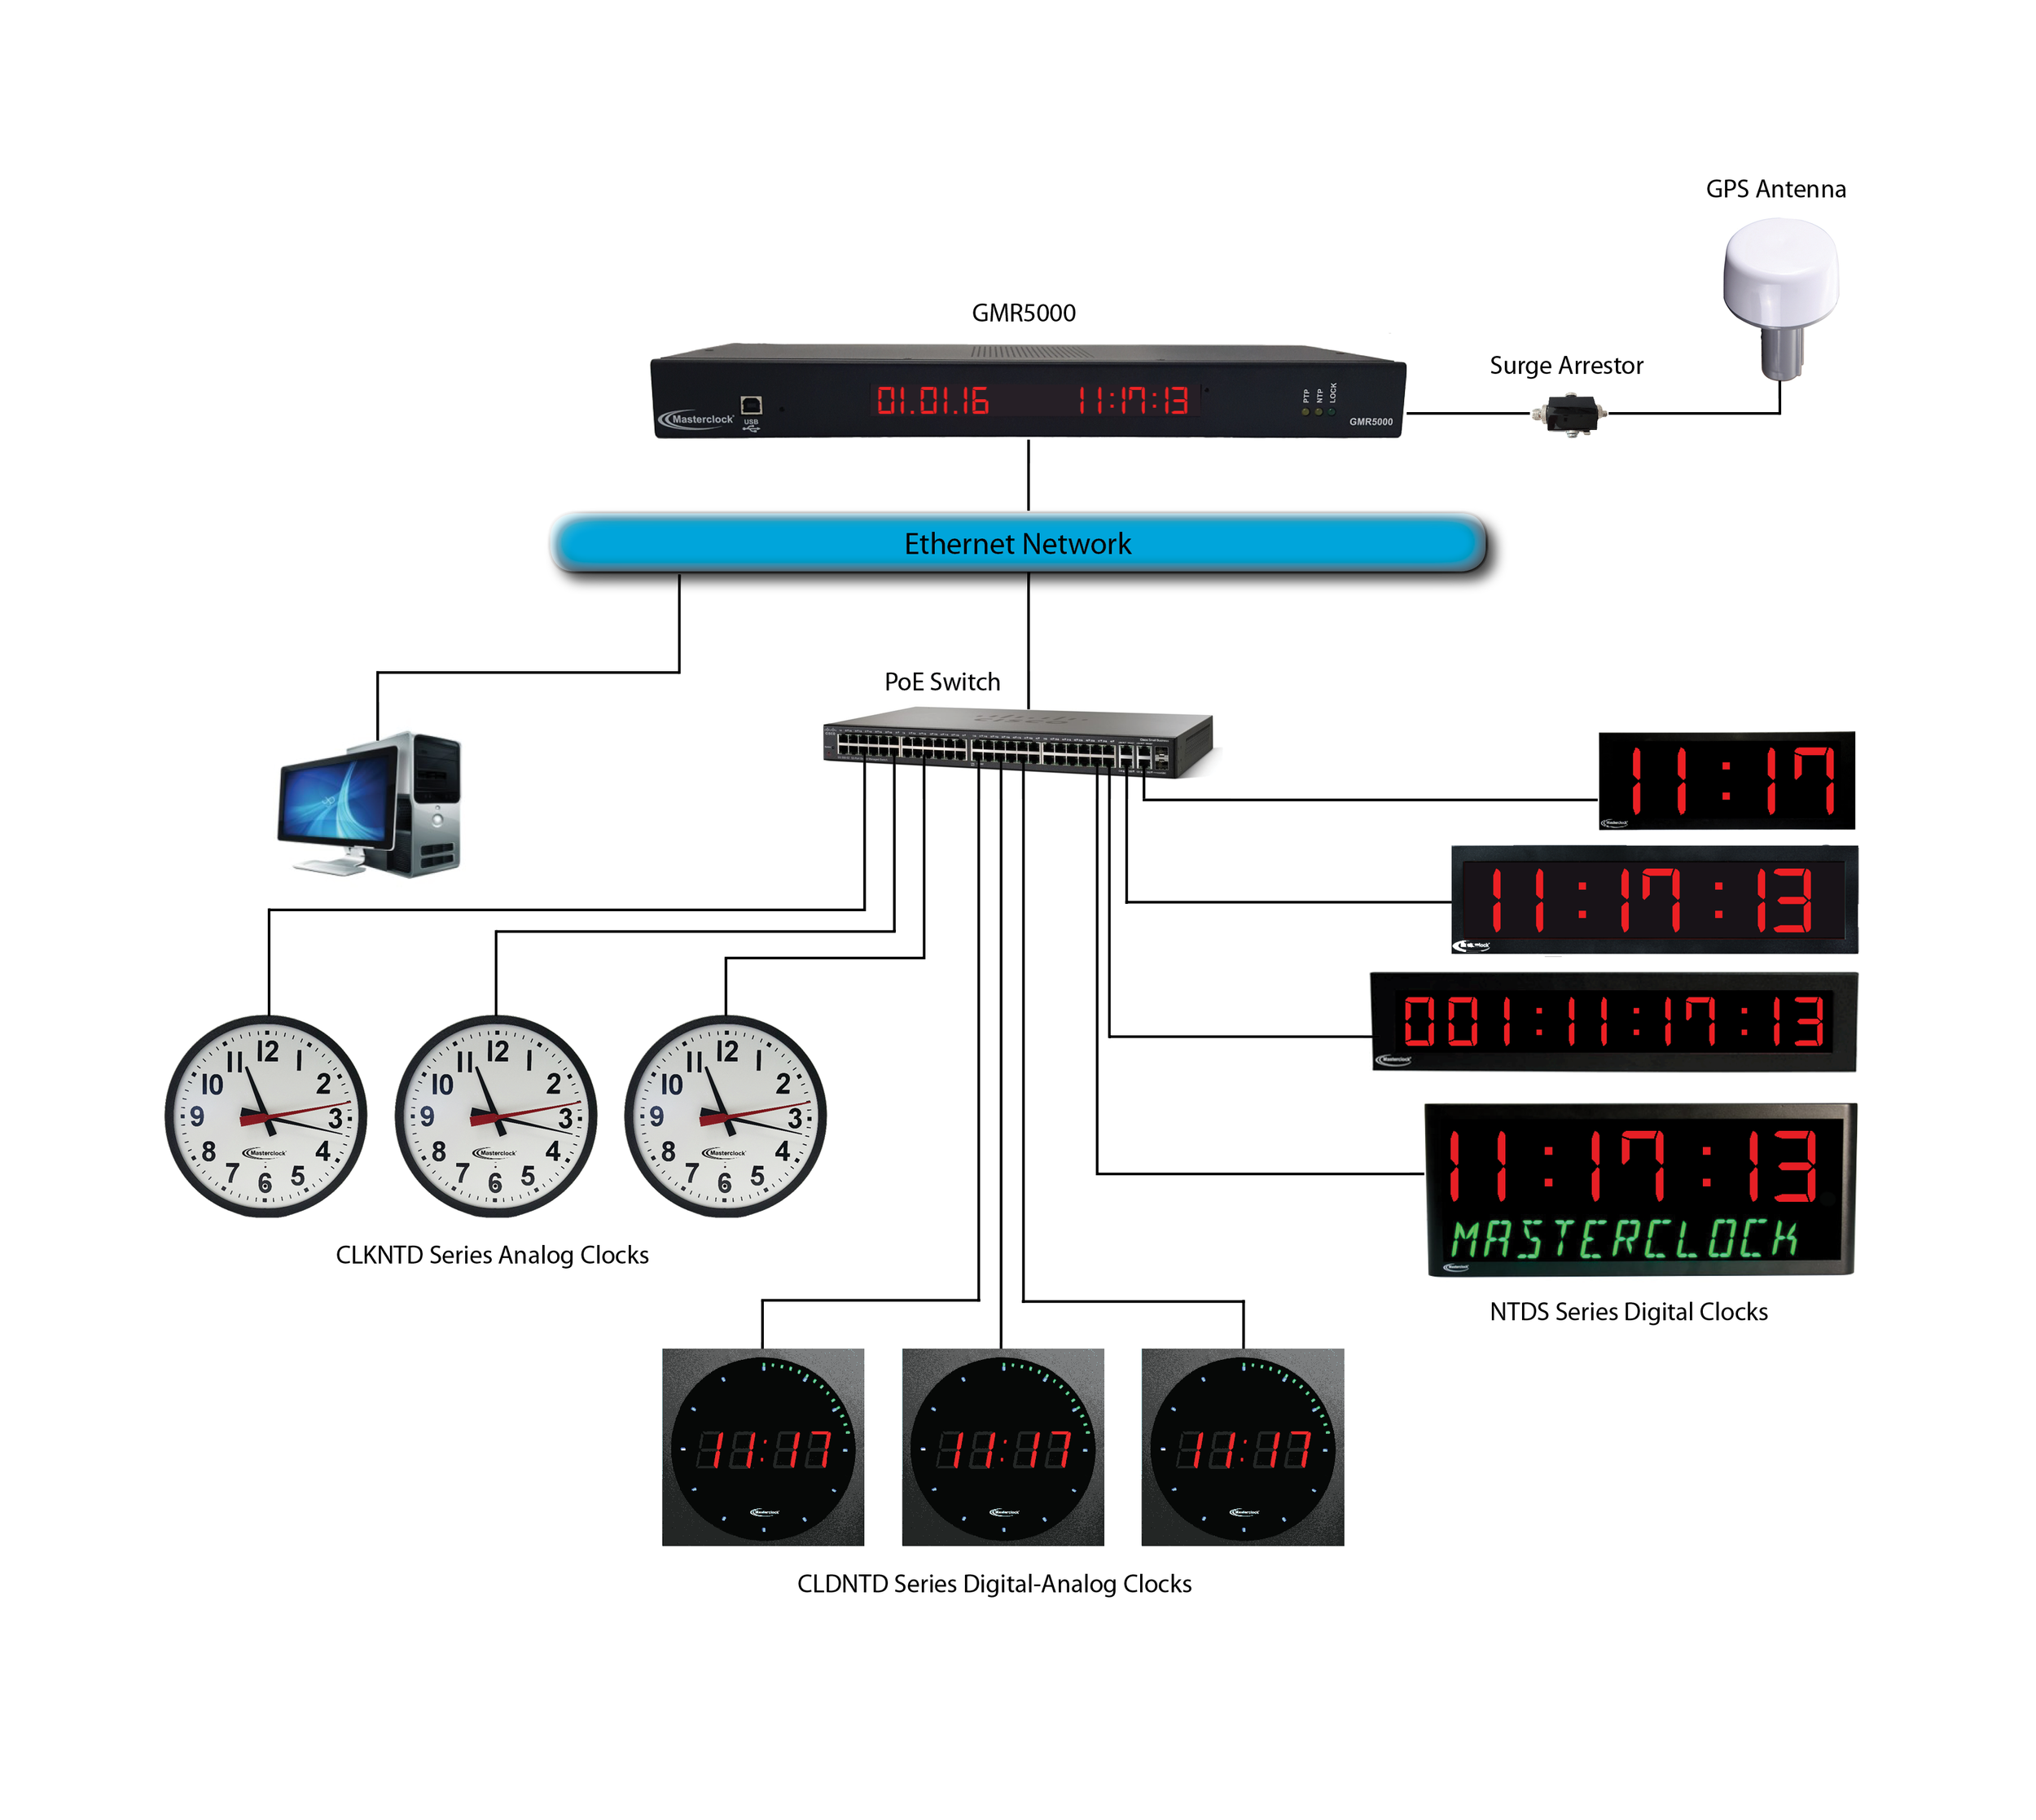 Suggested Specifications for a GPS Network Clock System ... on data sheet pdf, body diagram pdf, power pdf, plumbing diagram pdf, welding diagram pdf, battery diagram pdf,